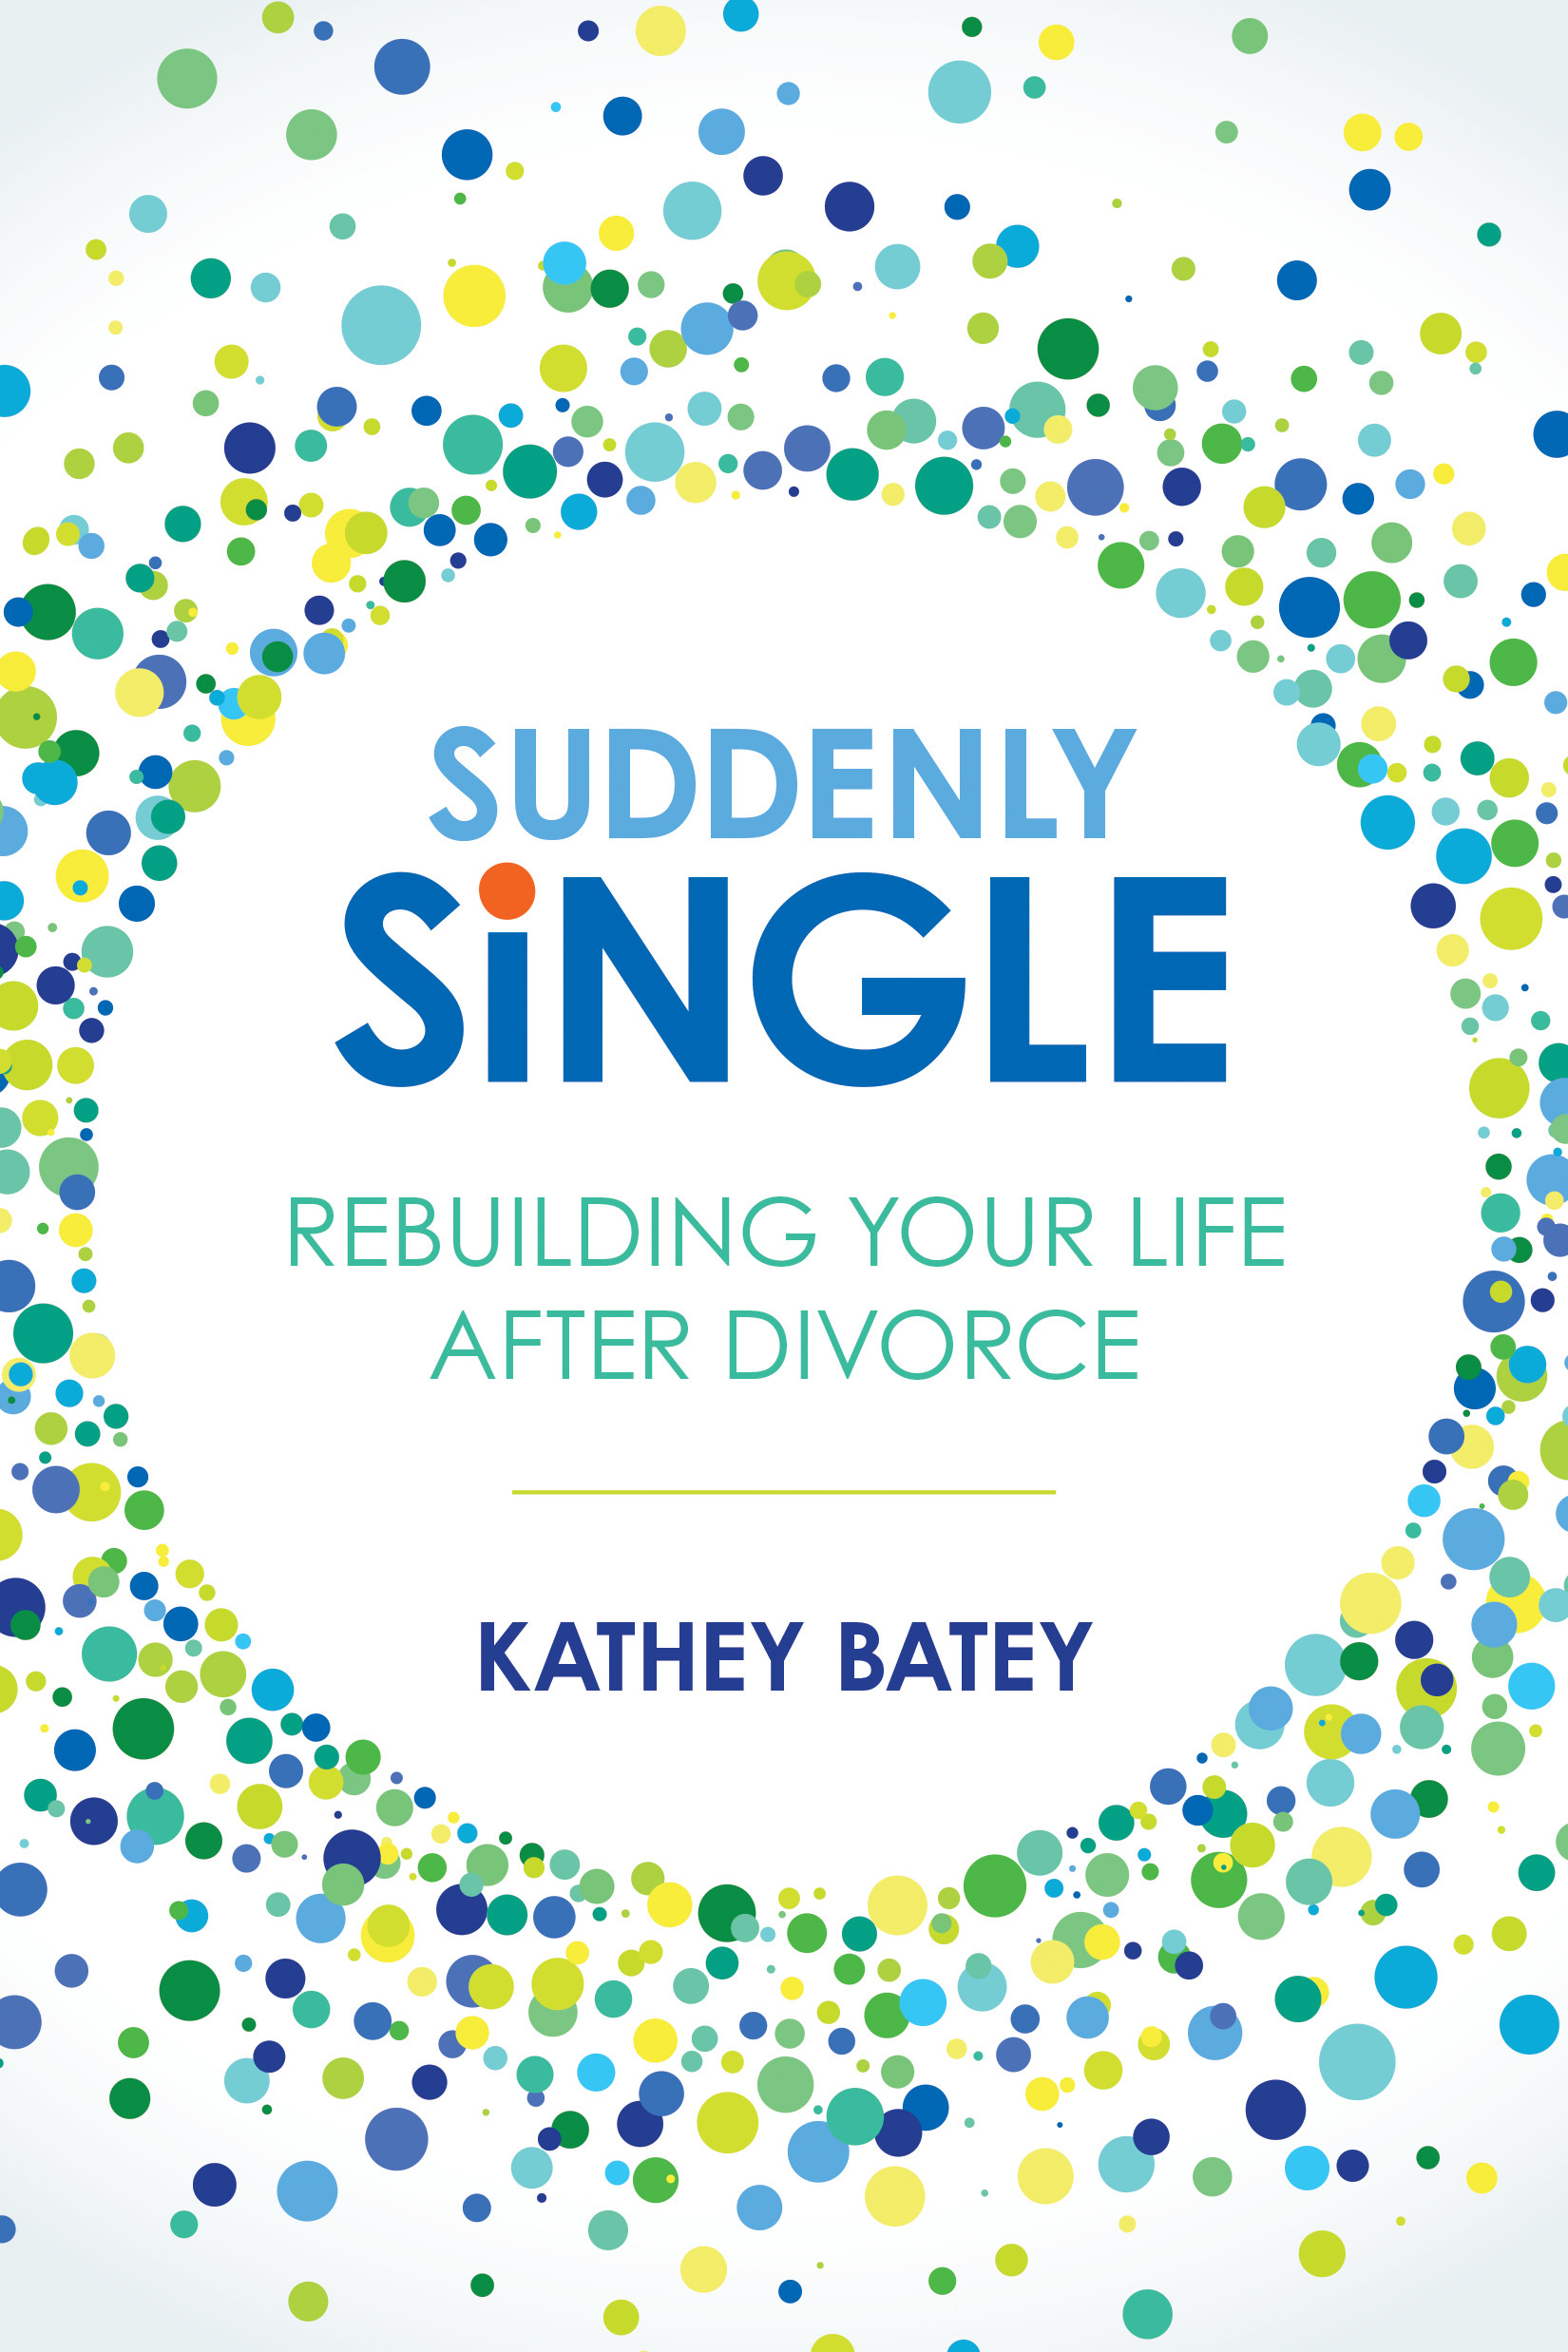 Suddenly Single Rebuilding Your Life after Divorce